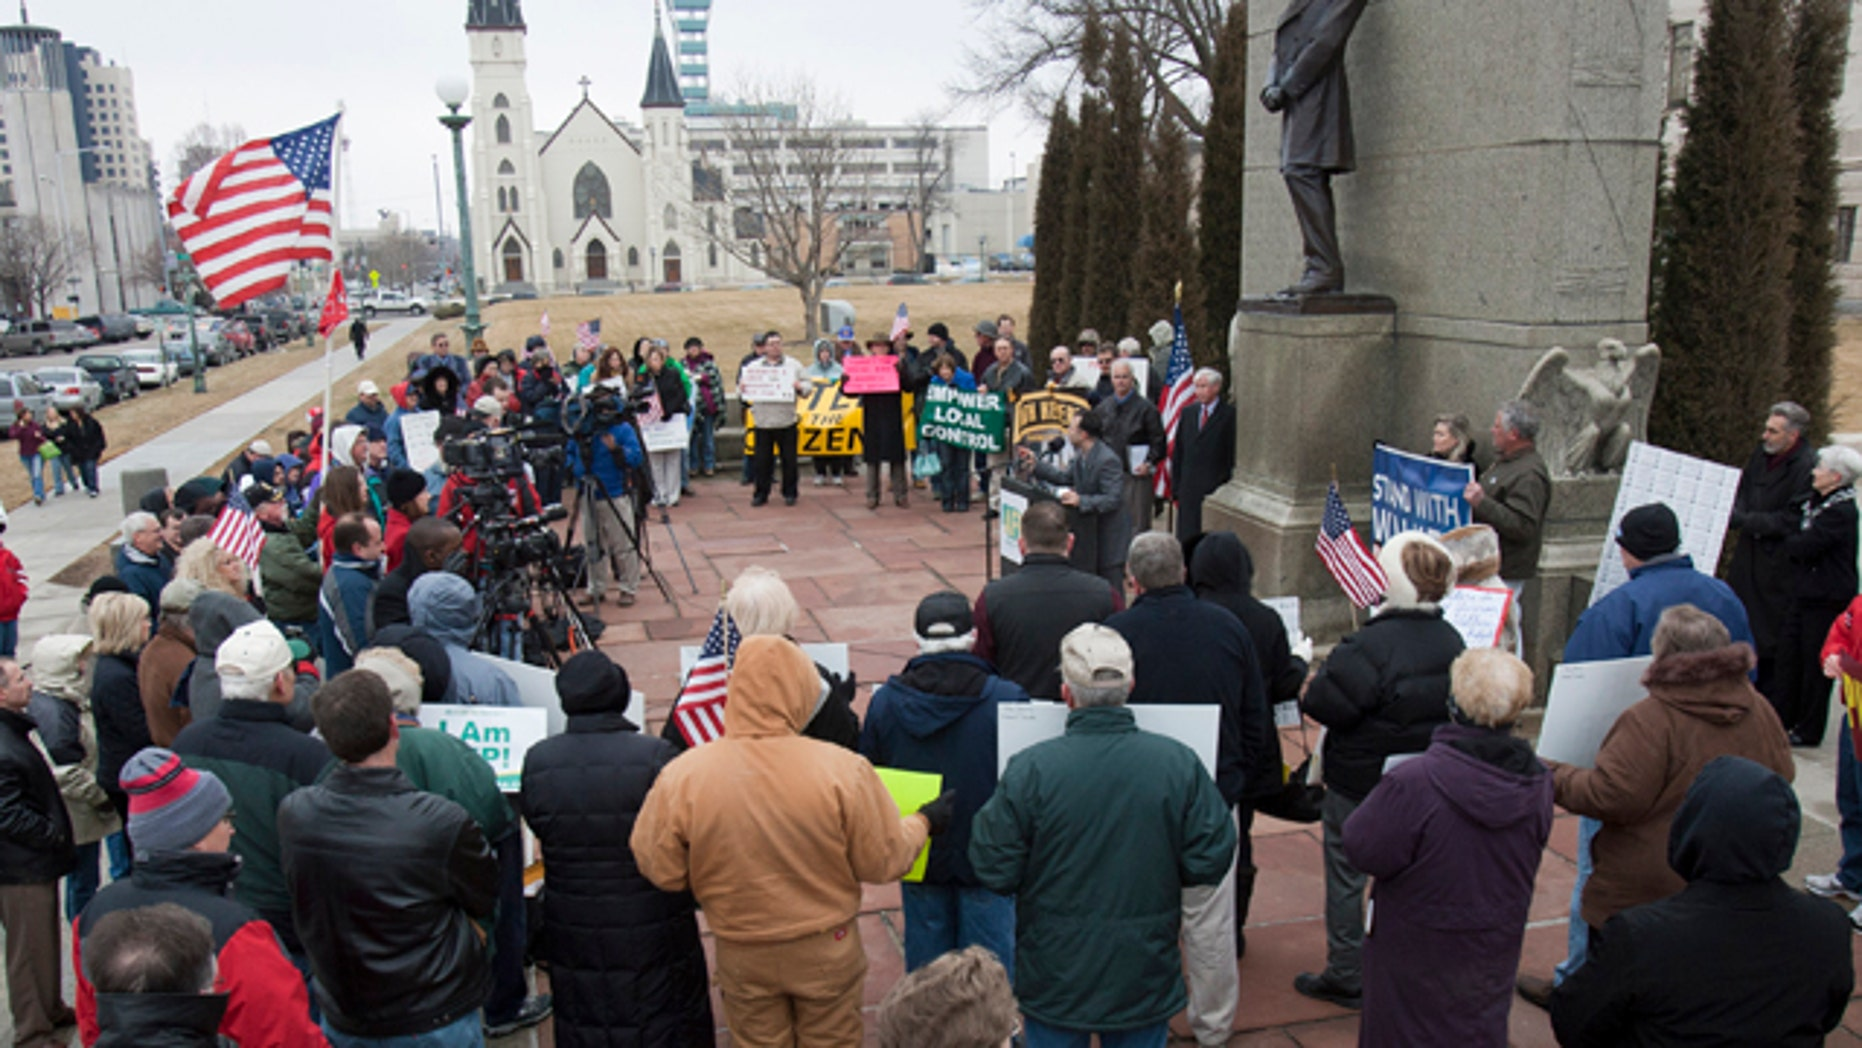 Participants in a rally  sponsored by Americans for Prosperity gather under a statue of Abraham Lincoln, outside the Nebraska State Capitol in Lincoln, Neb., Friday, March 4, 2011